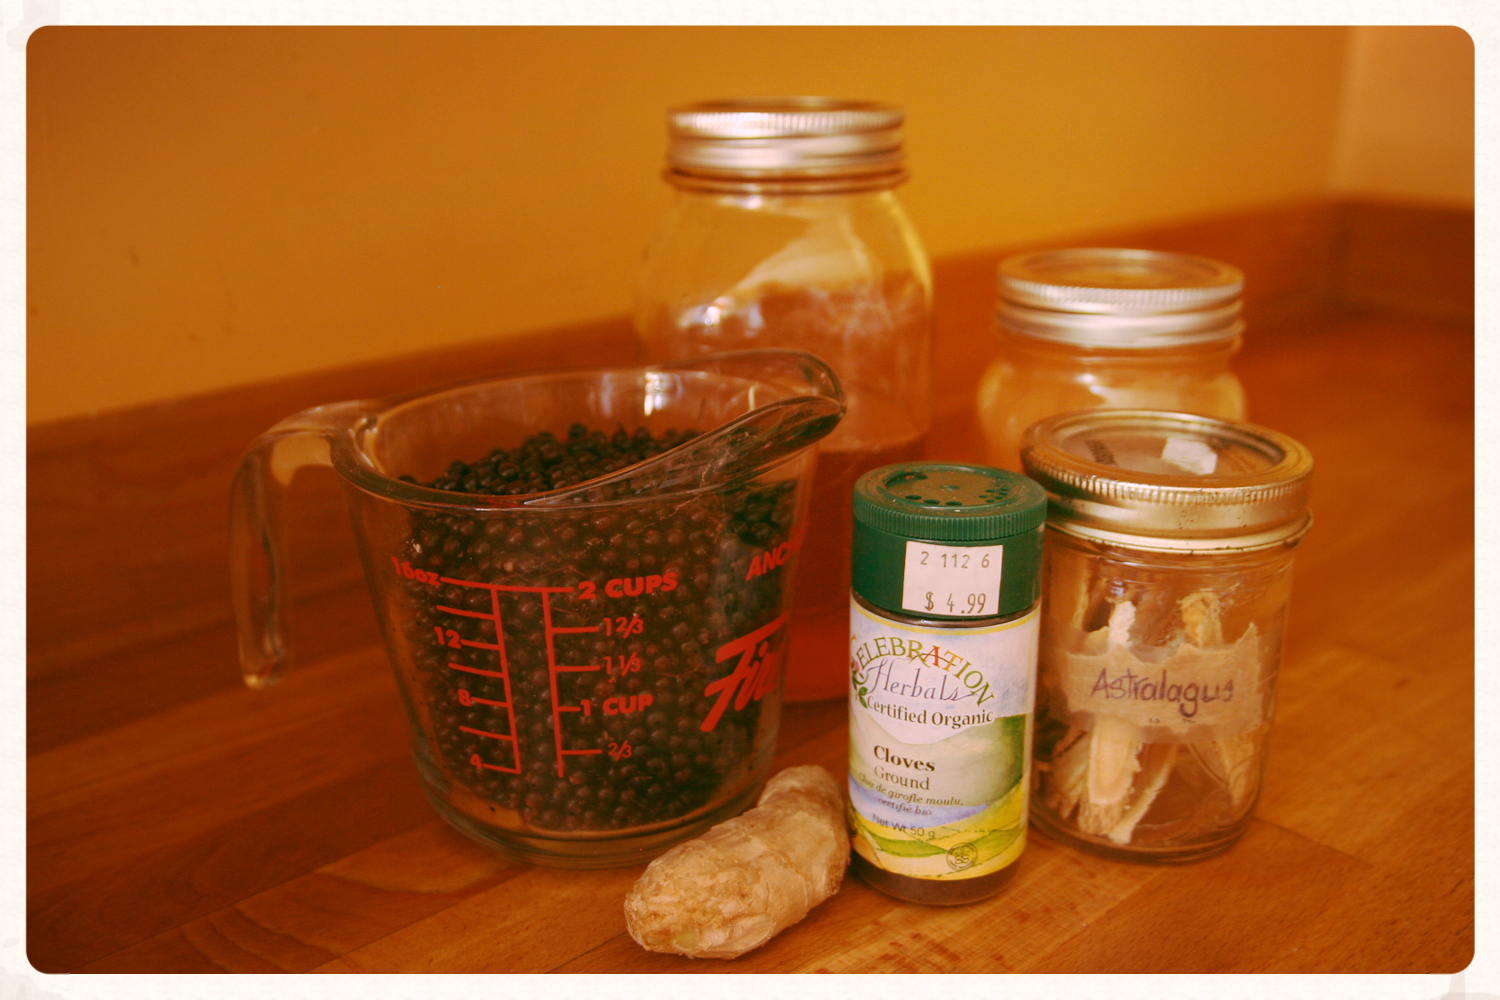 Ingredients for my elderberry syrup